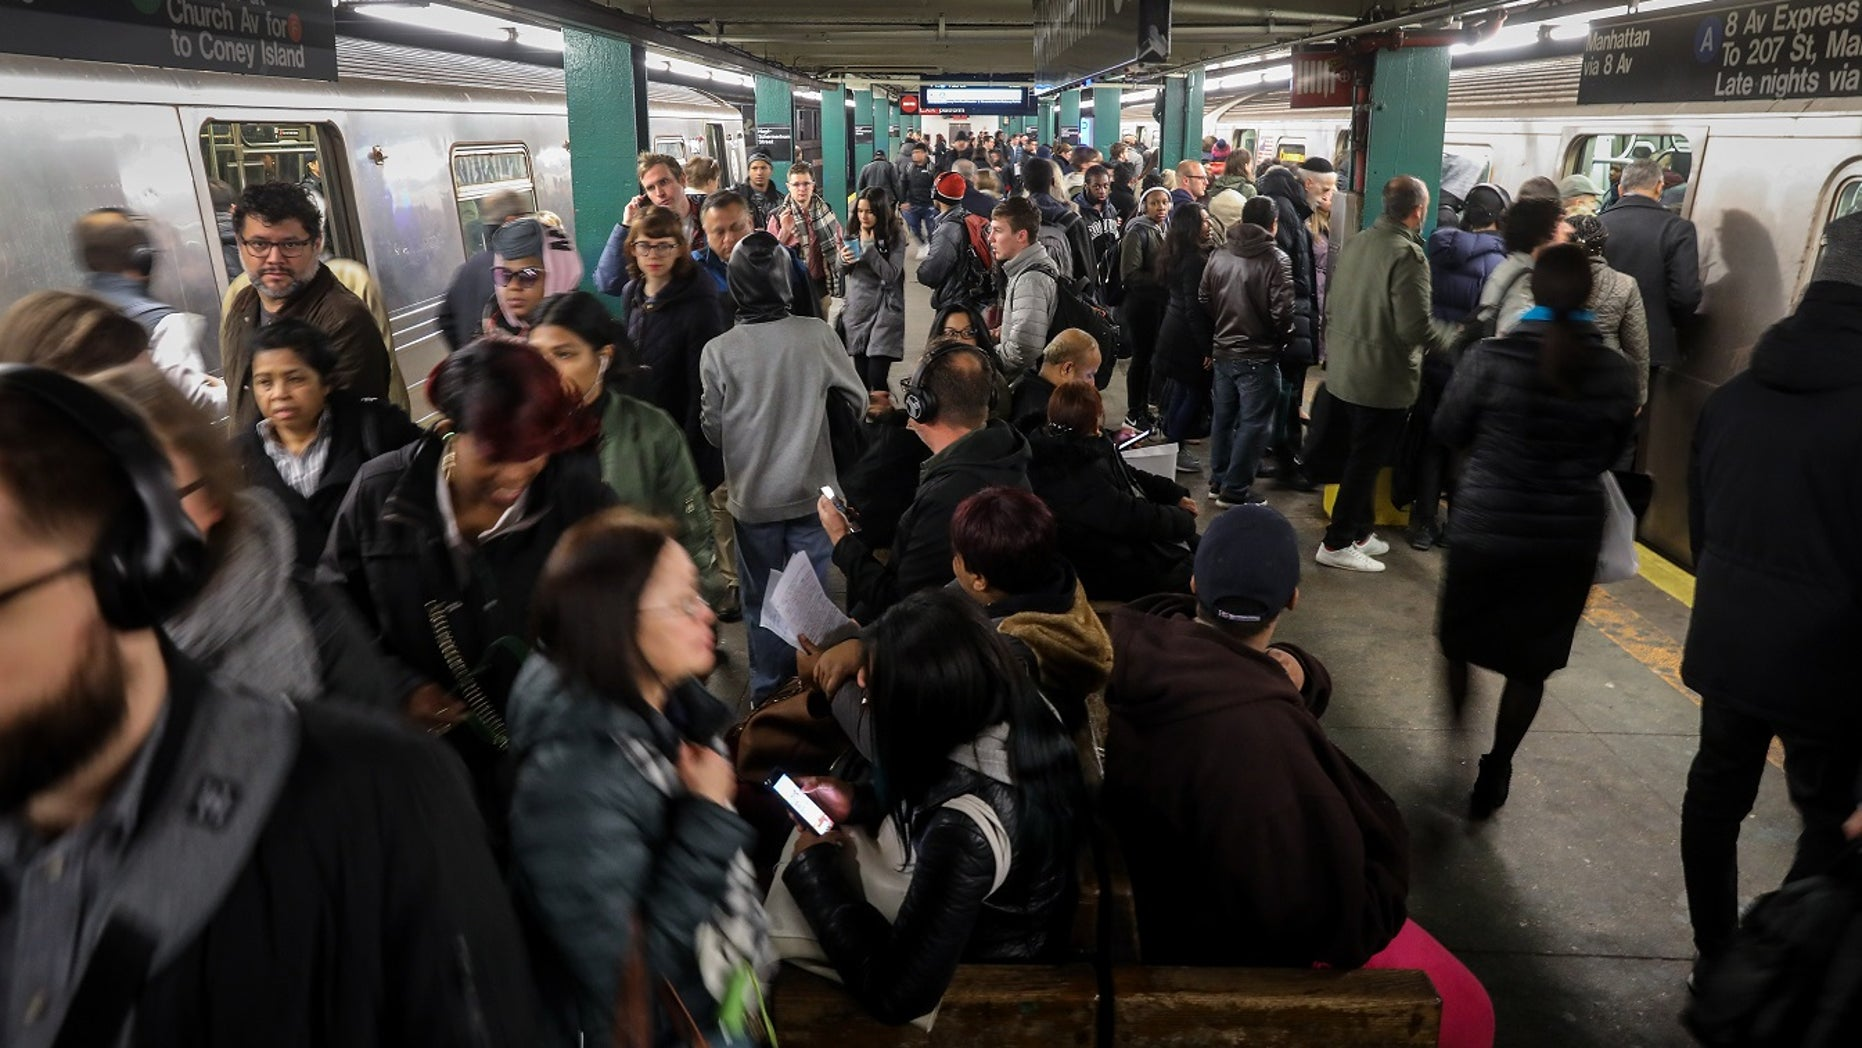 MTA officials said commuters riding the subway in New York City were partially to blame for the delays.